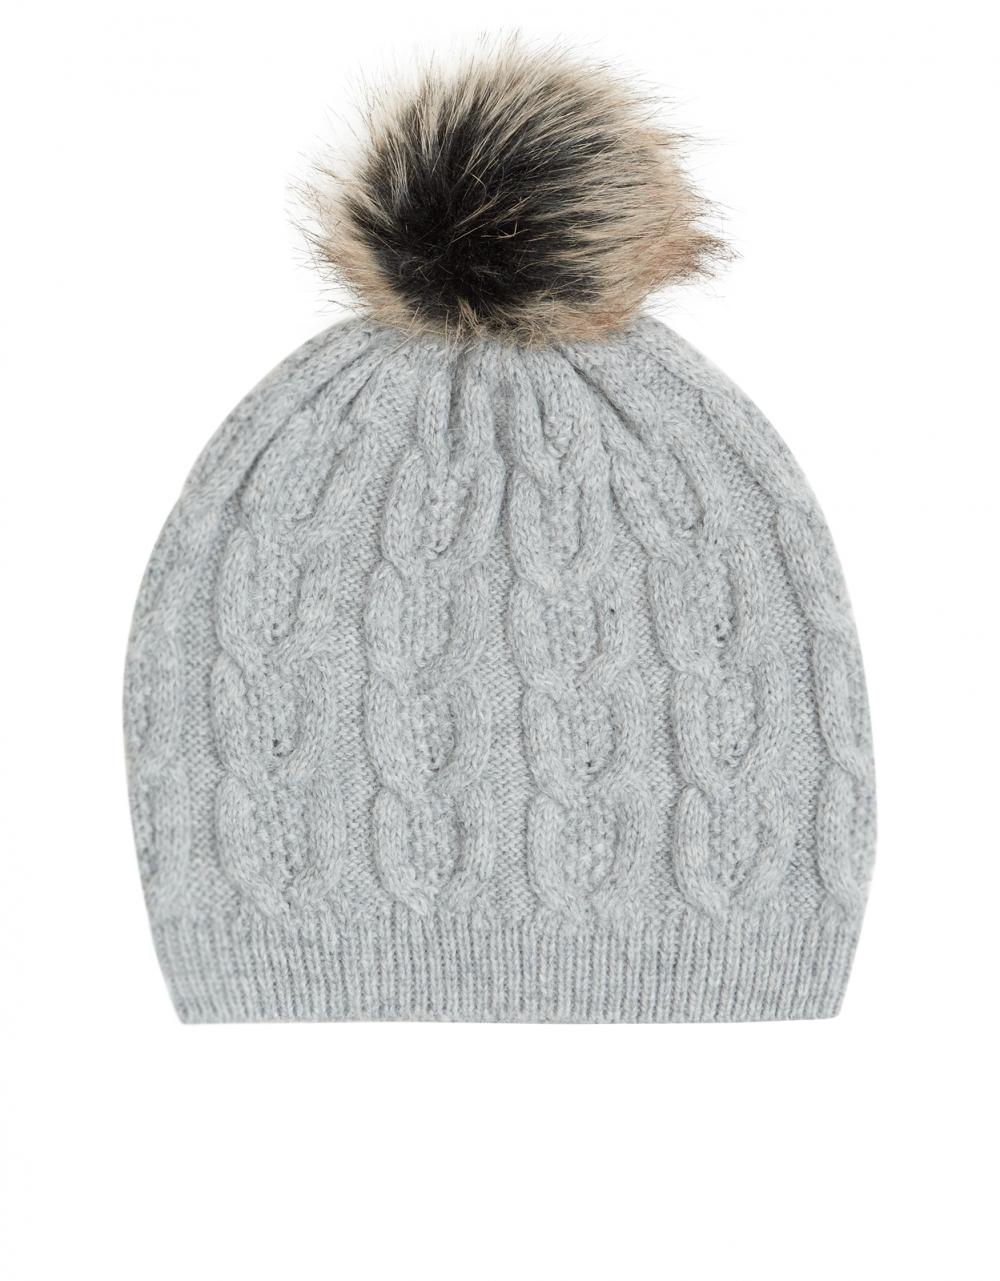 Kensington Cable Fur Pom Beanie Grey